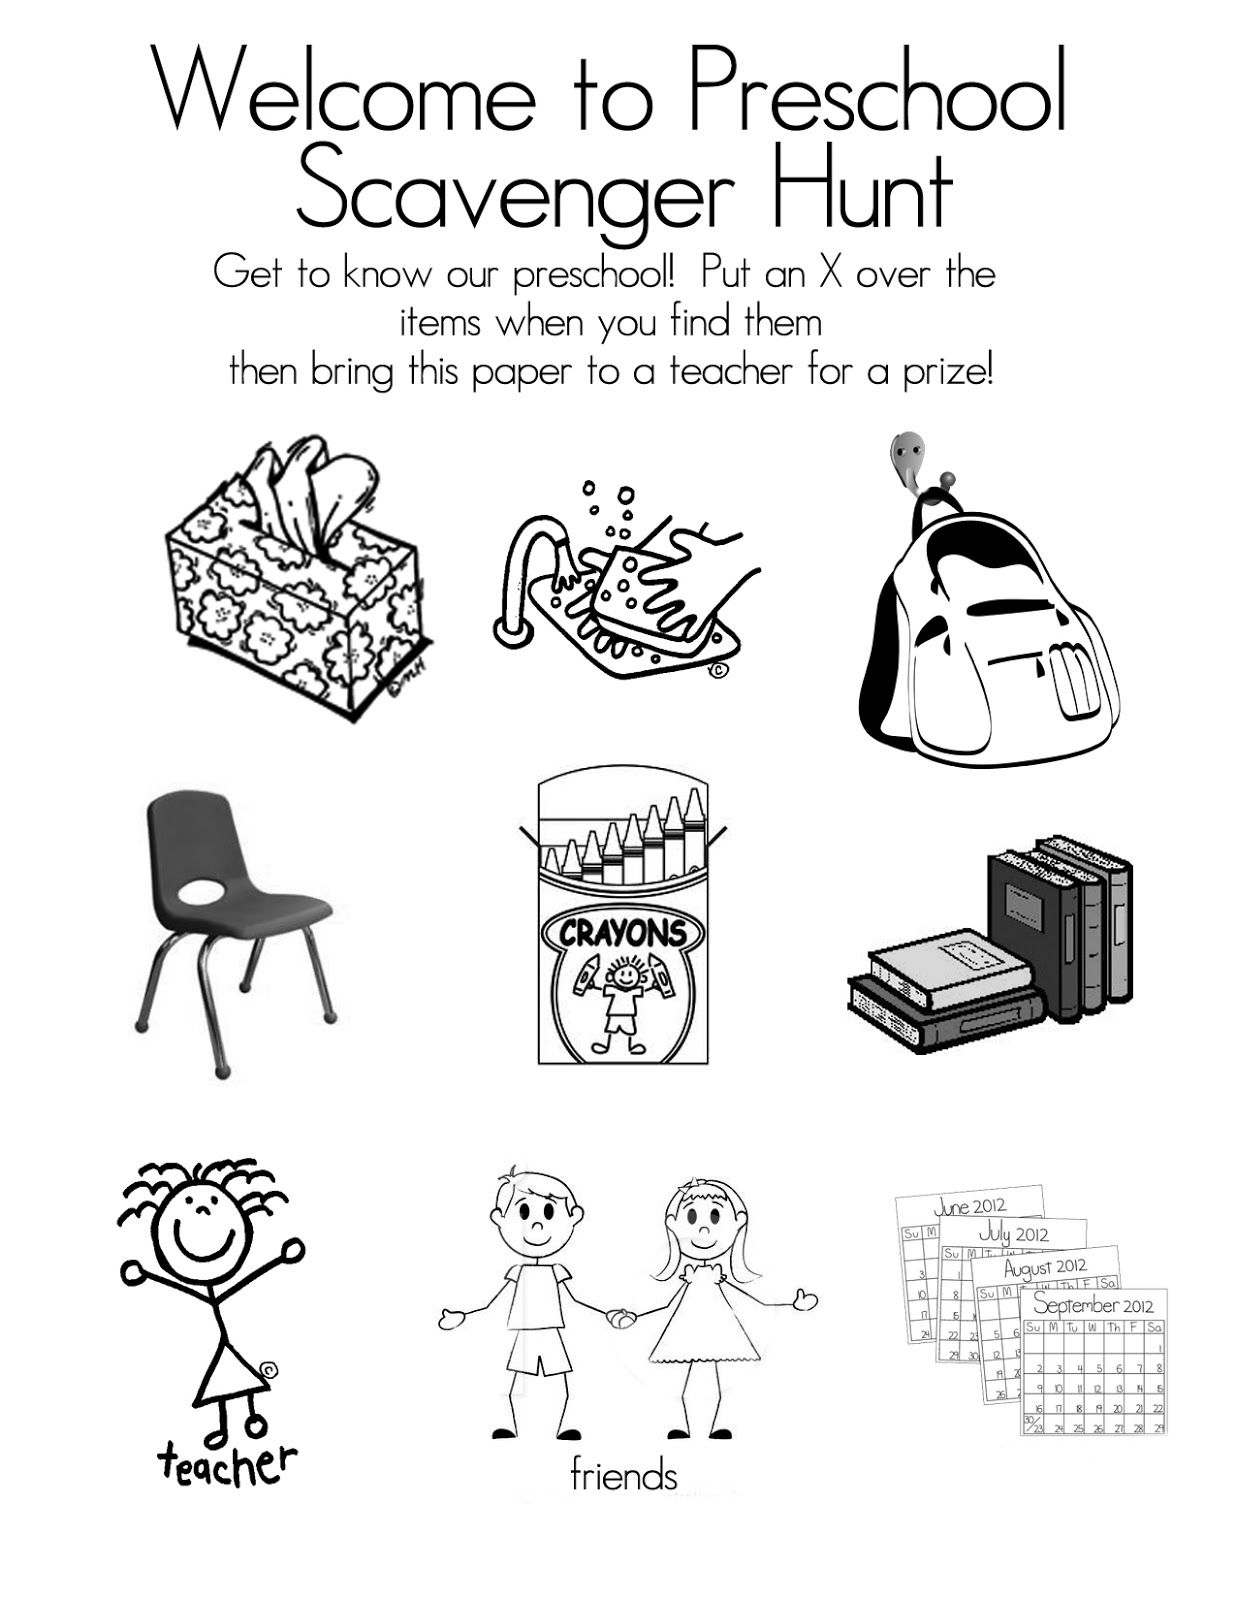 Preschool Open House Free Printable Scavenger Hunt Preschool